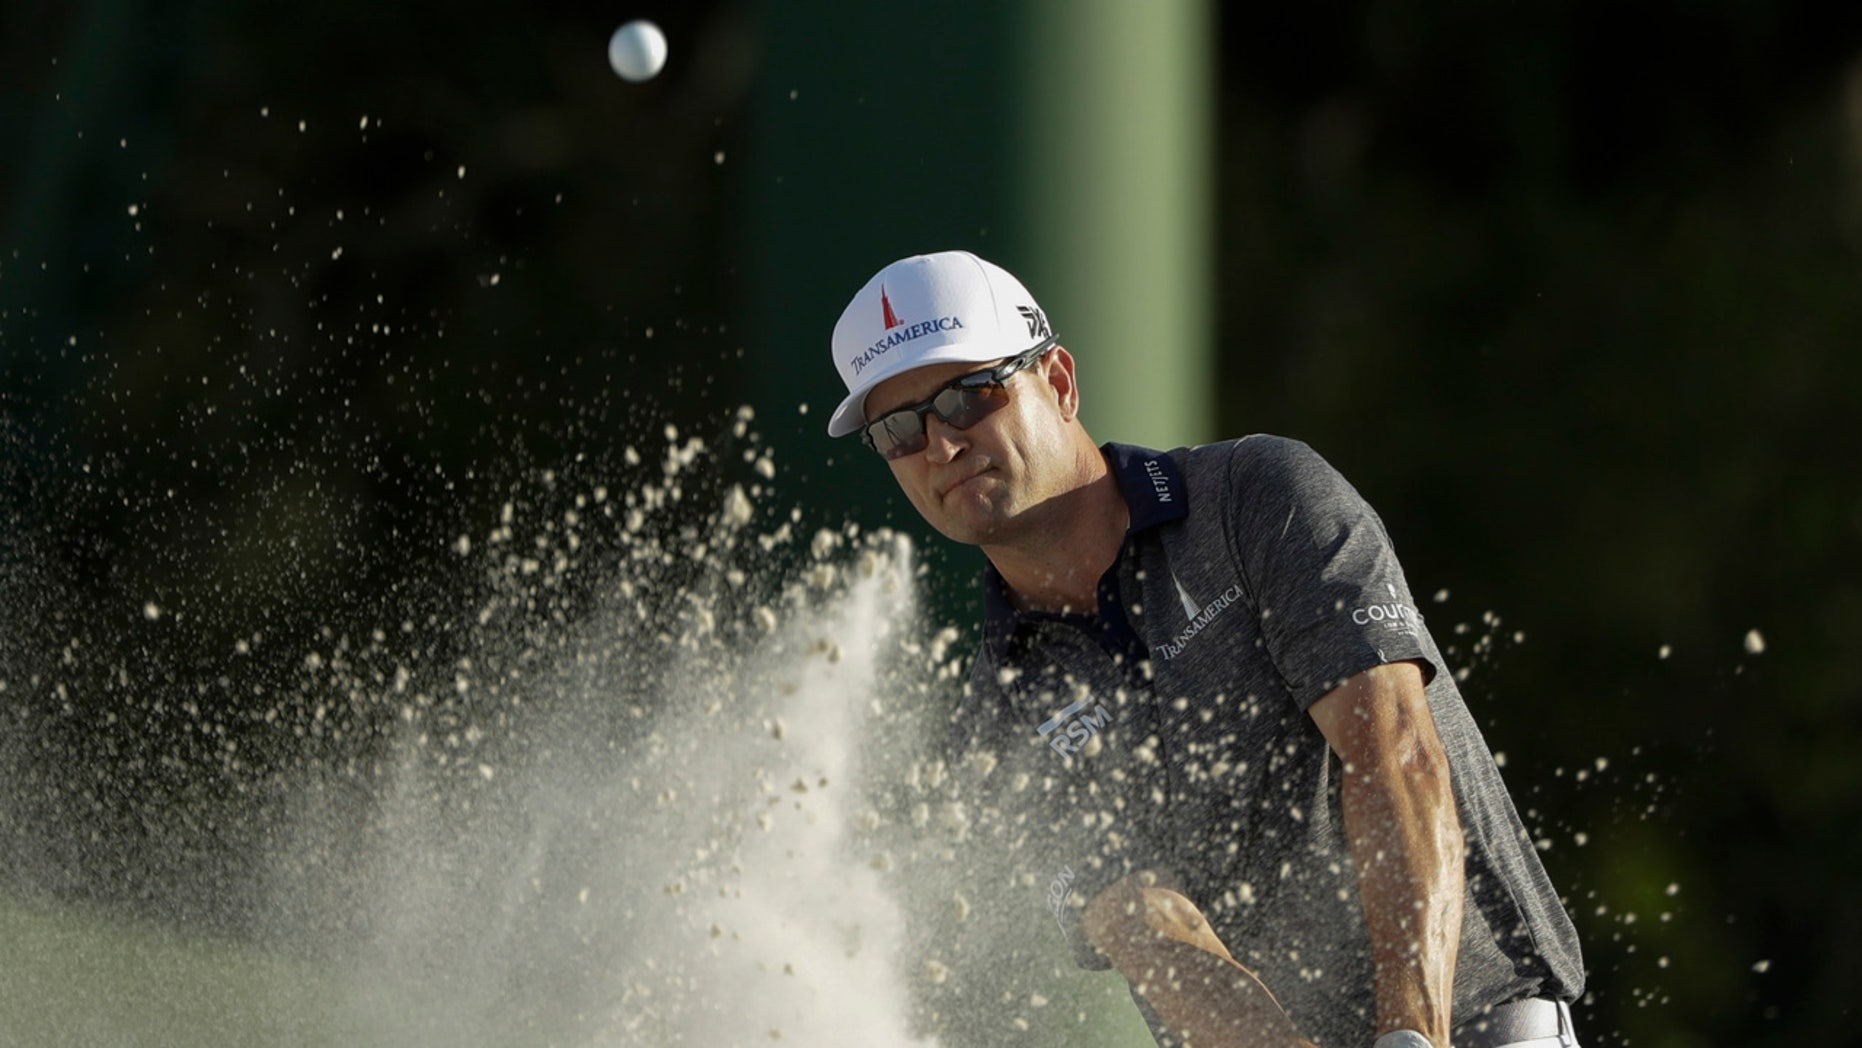 Zach Johnson hits on the 18th hole on Thursday during the first round for the Masters golf tournament in Augusta, Ga. (AP Photo/Marcio Jose Sanchez)